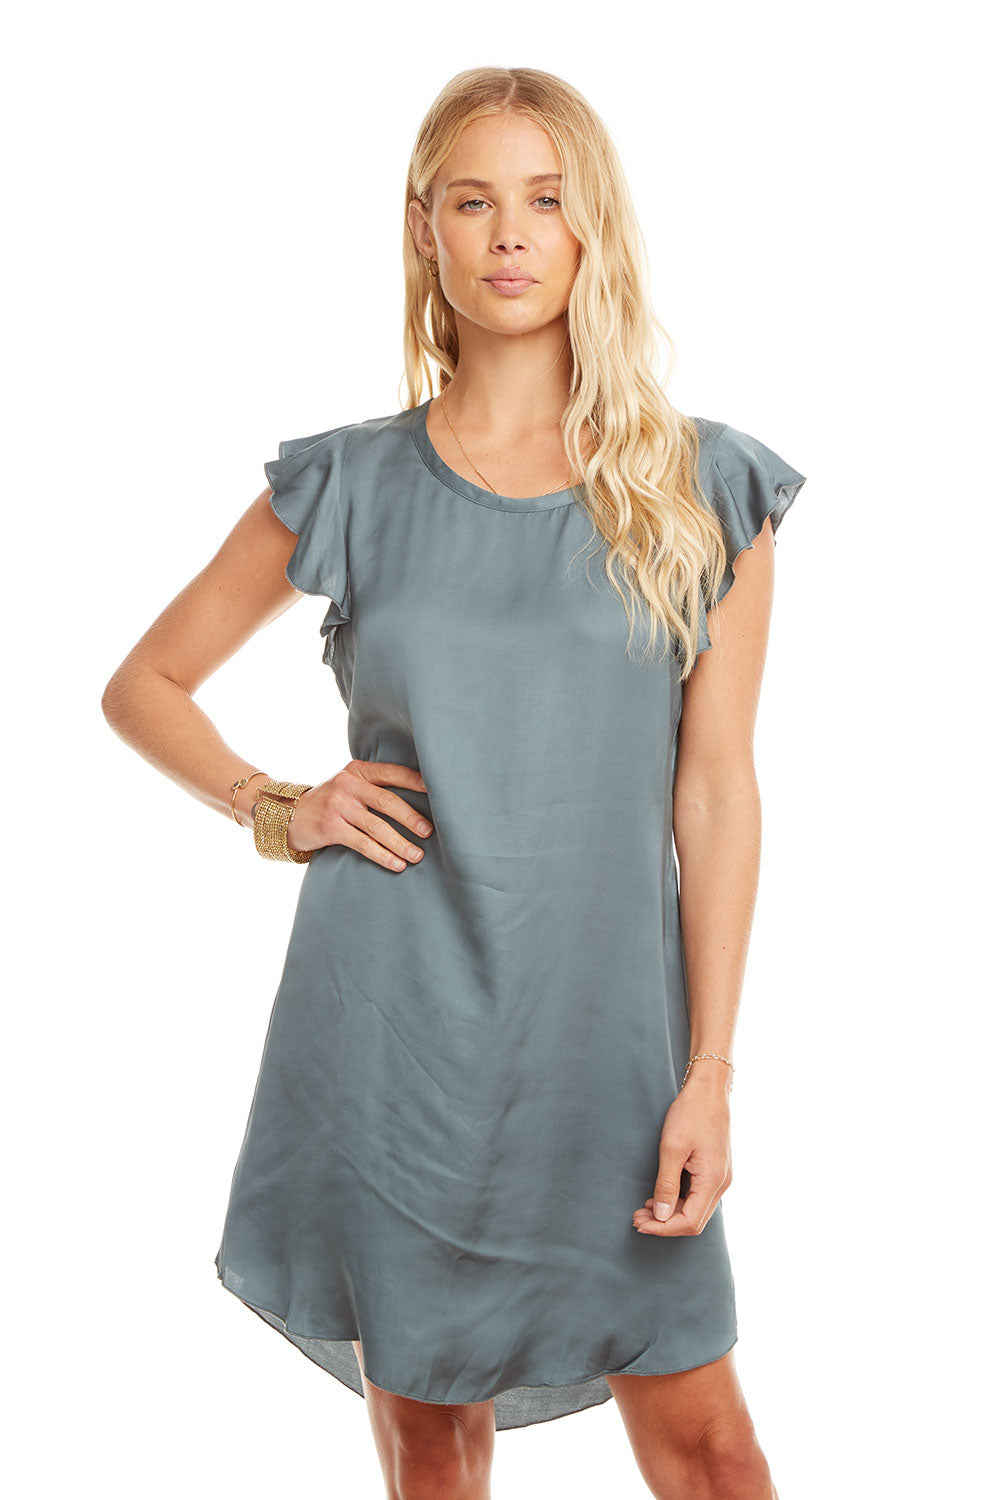 Silky Flutter Sleeve Hi-Lo Shirttail Dress WOMENS chaserbrand4.myshopify.com